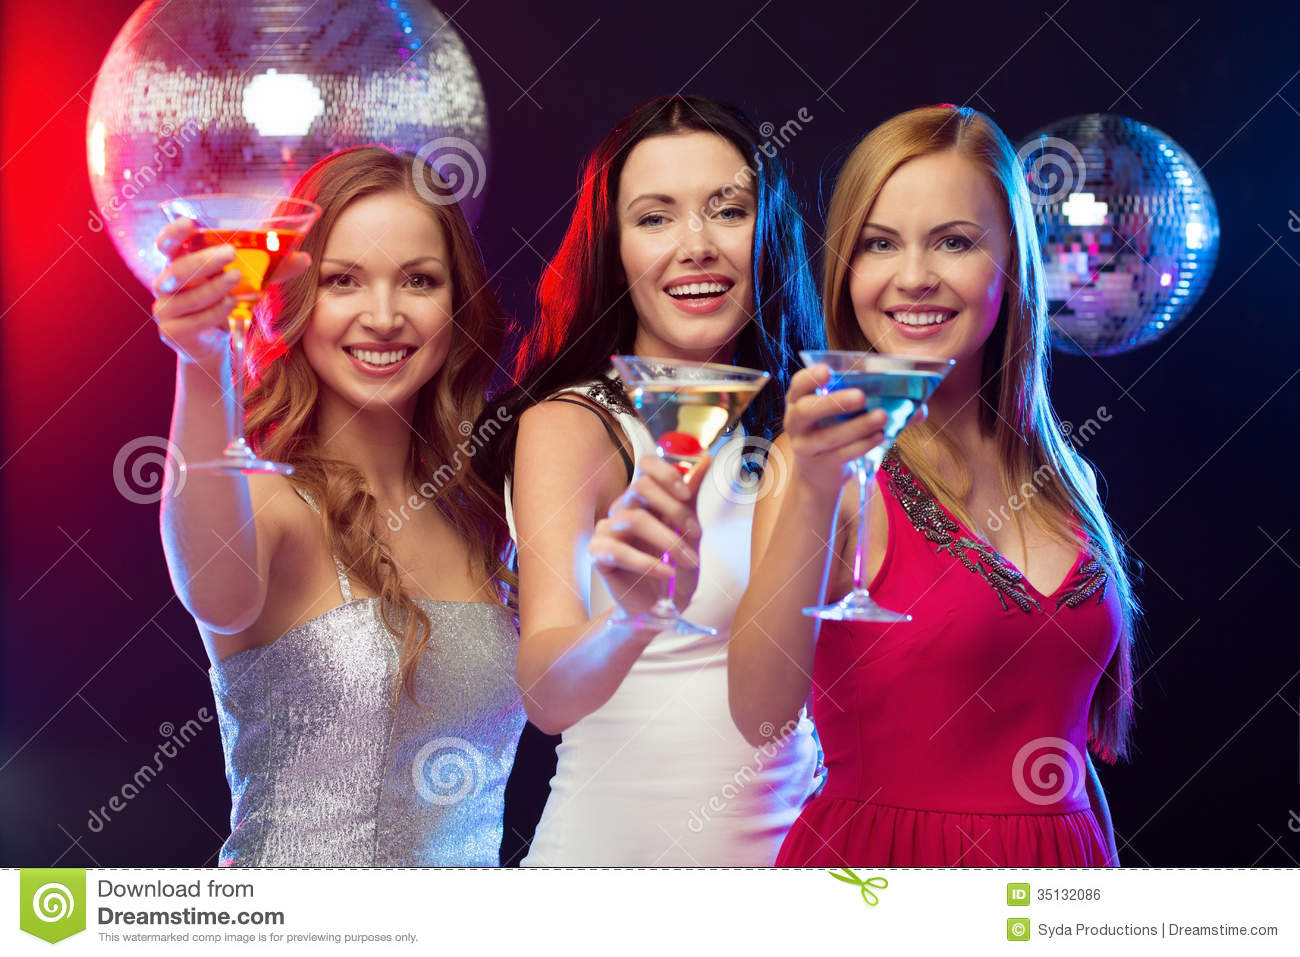 three-smiling-women-cocktails-disco-ball-new-year-celebration-friends-bachelorette-party-birthday-concept-evening-35132086.jpg